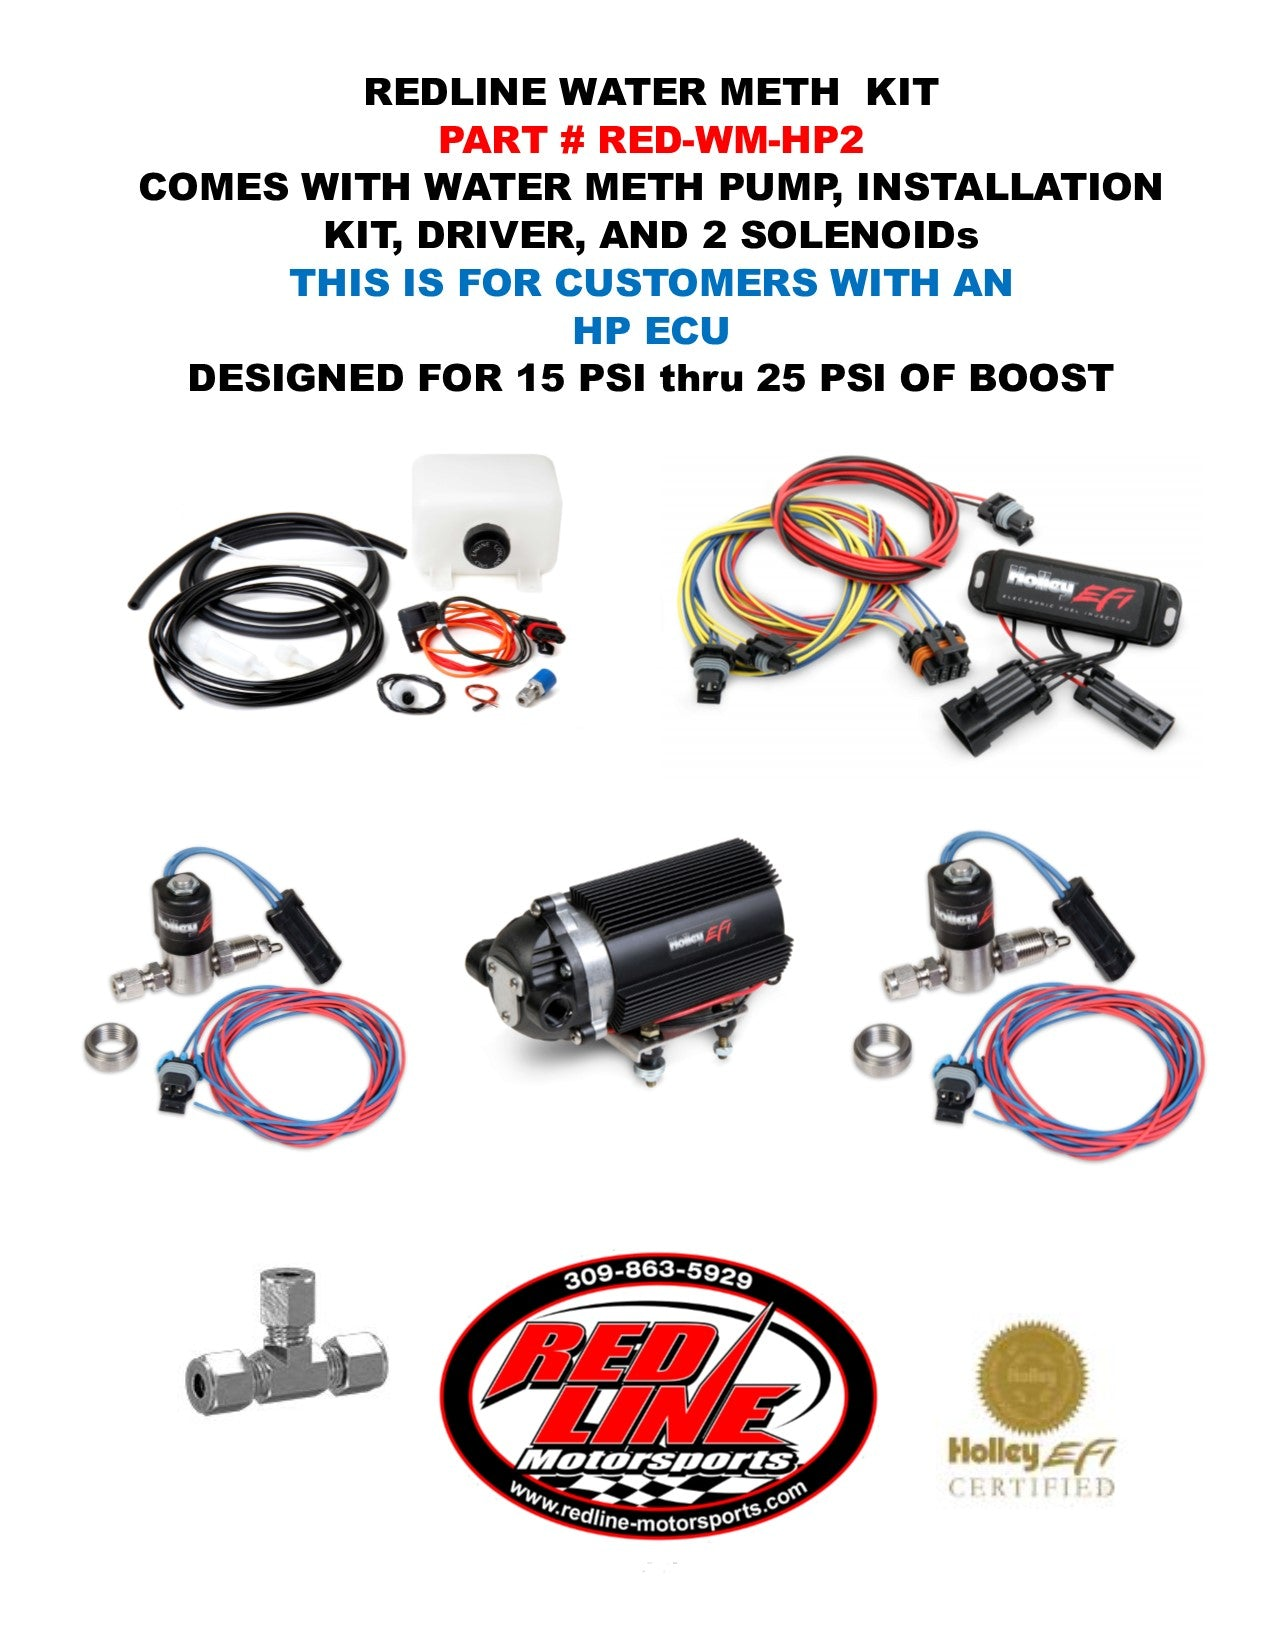 REDLINE WATER/METH KIT FOR HOLLEY HP COMPUTERS WITH 2 SOLENOIDS (15 PSI TO 25 PSI)